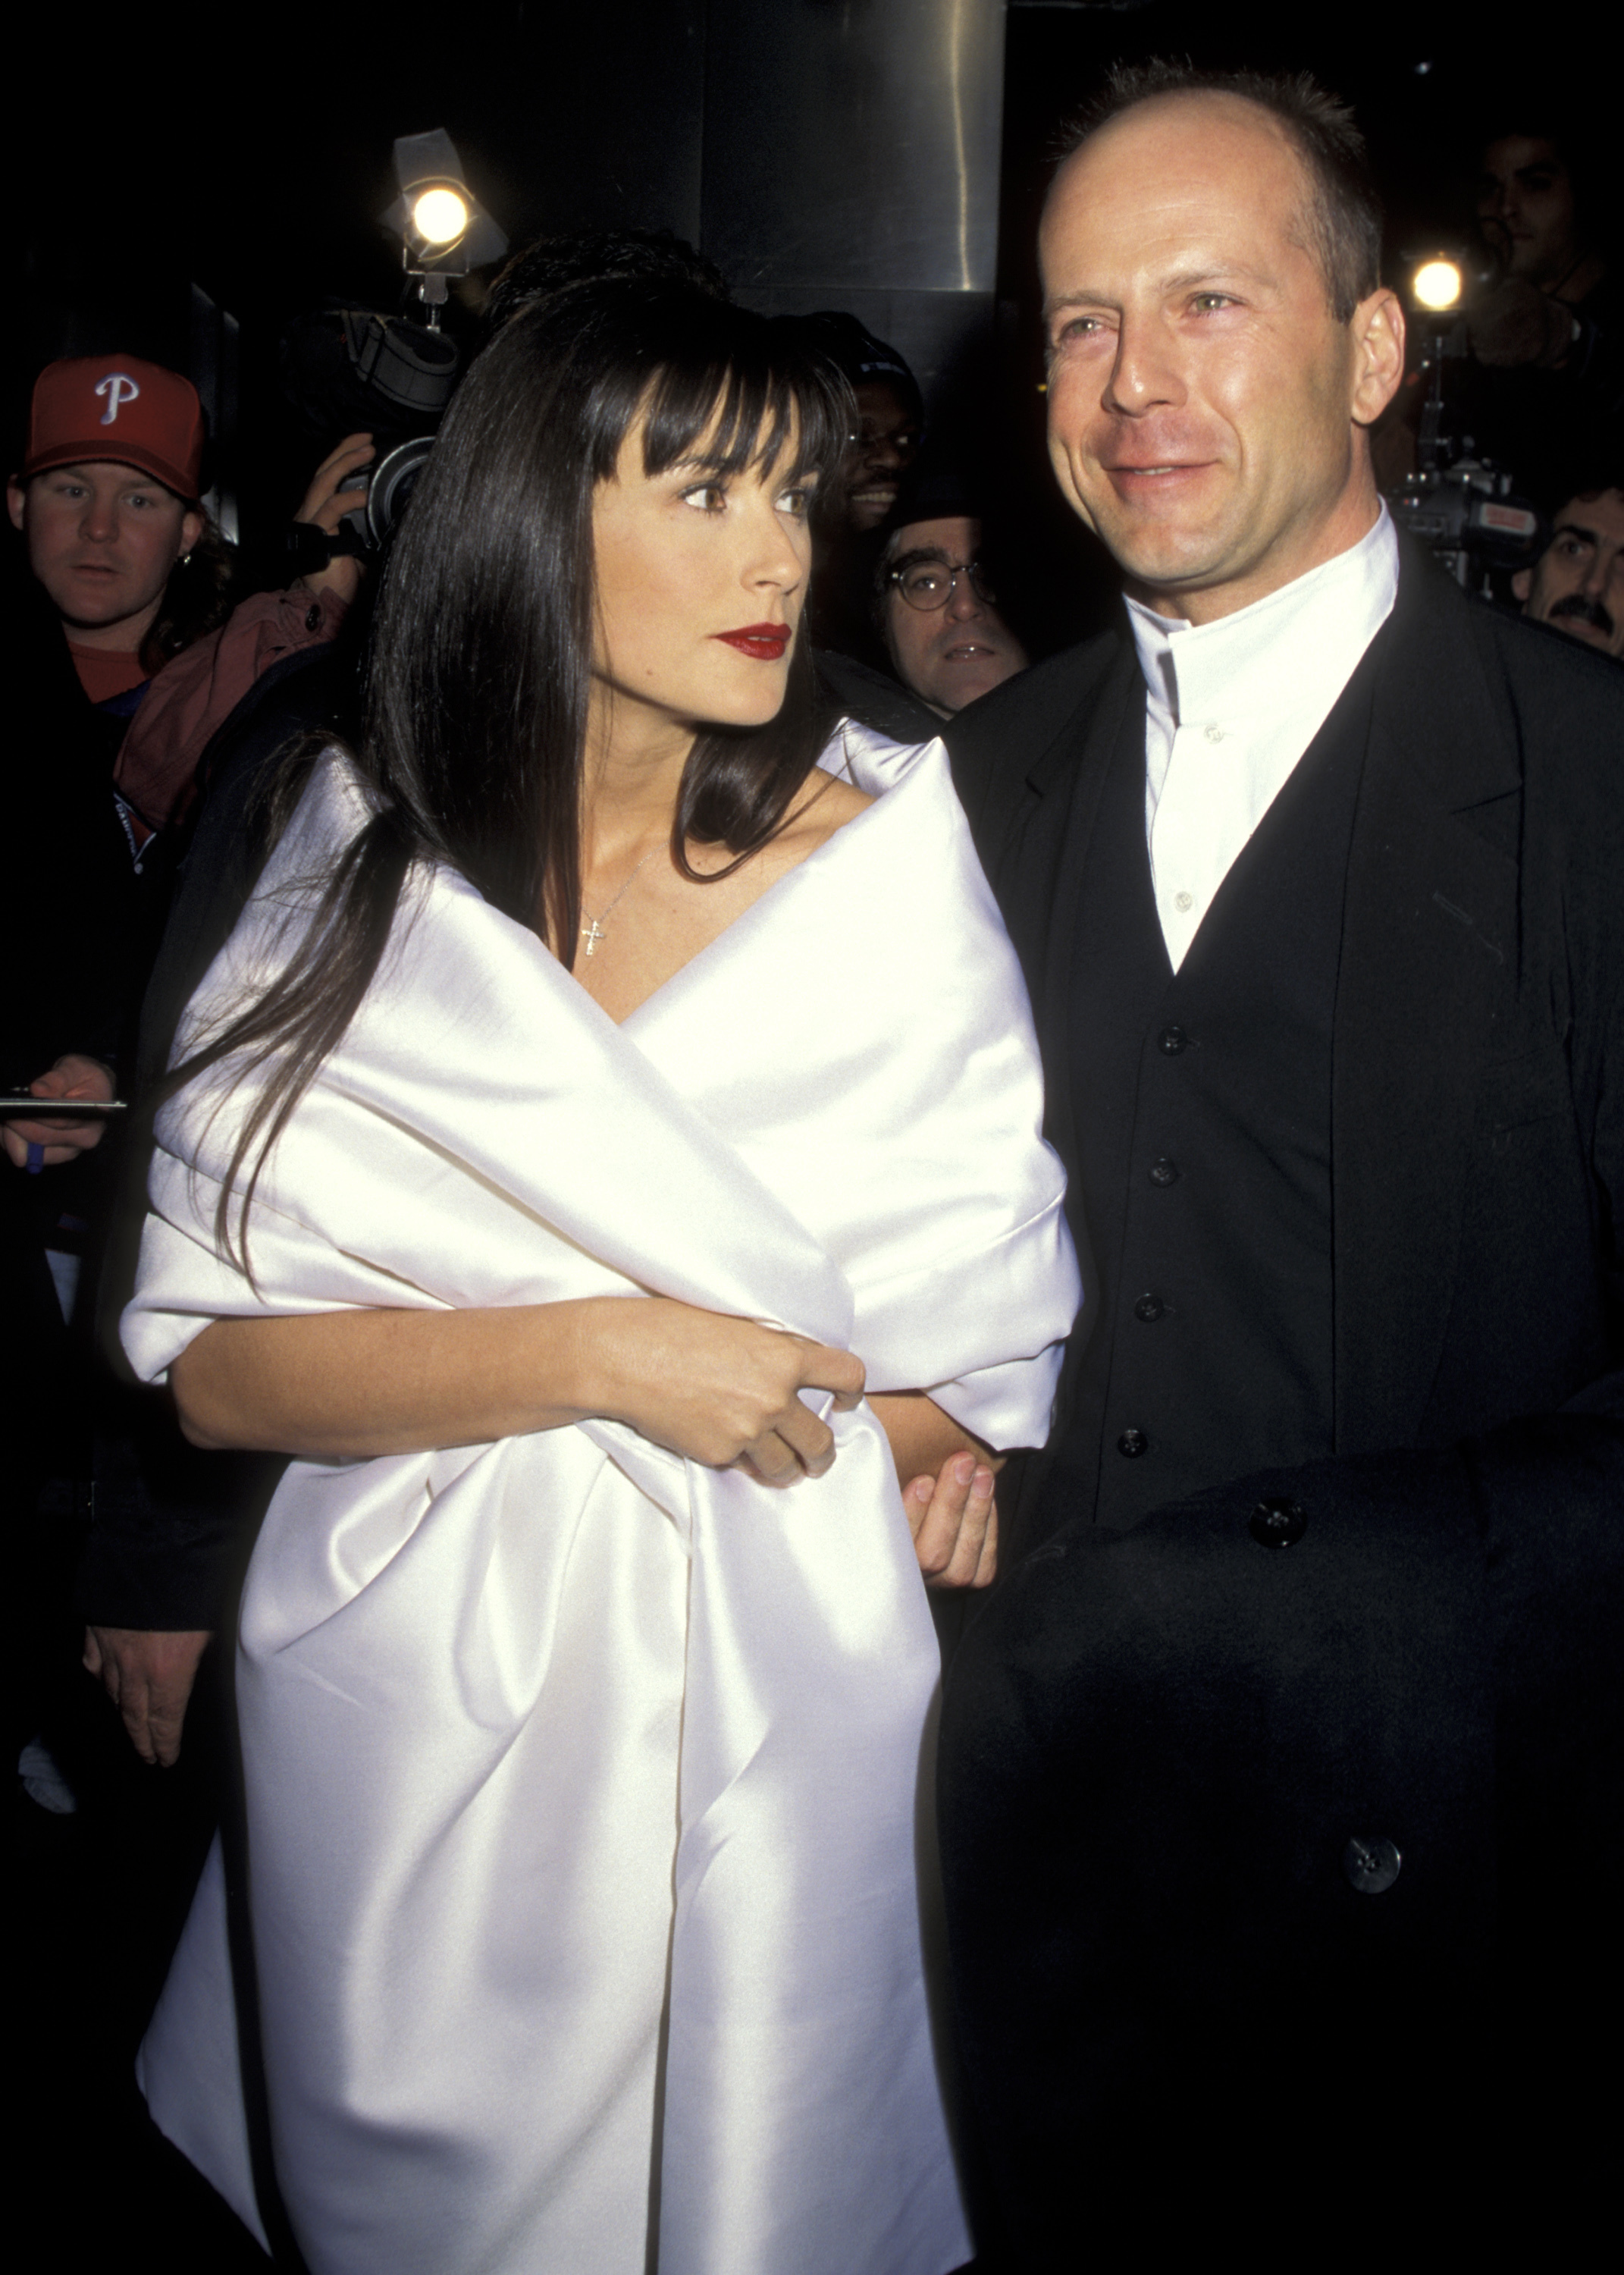 Demi Moore and Bruce Willis attend amfAR's Dolls Have a Heart benefit in New York City on Feb. 14, 1996.